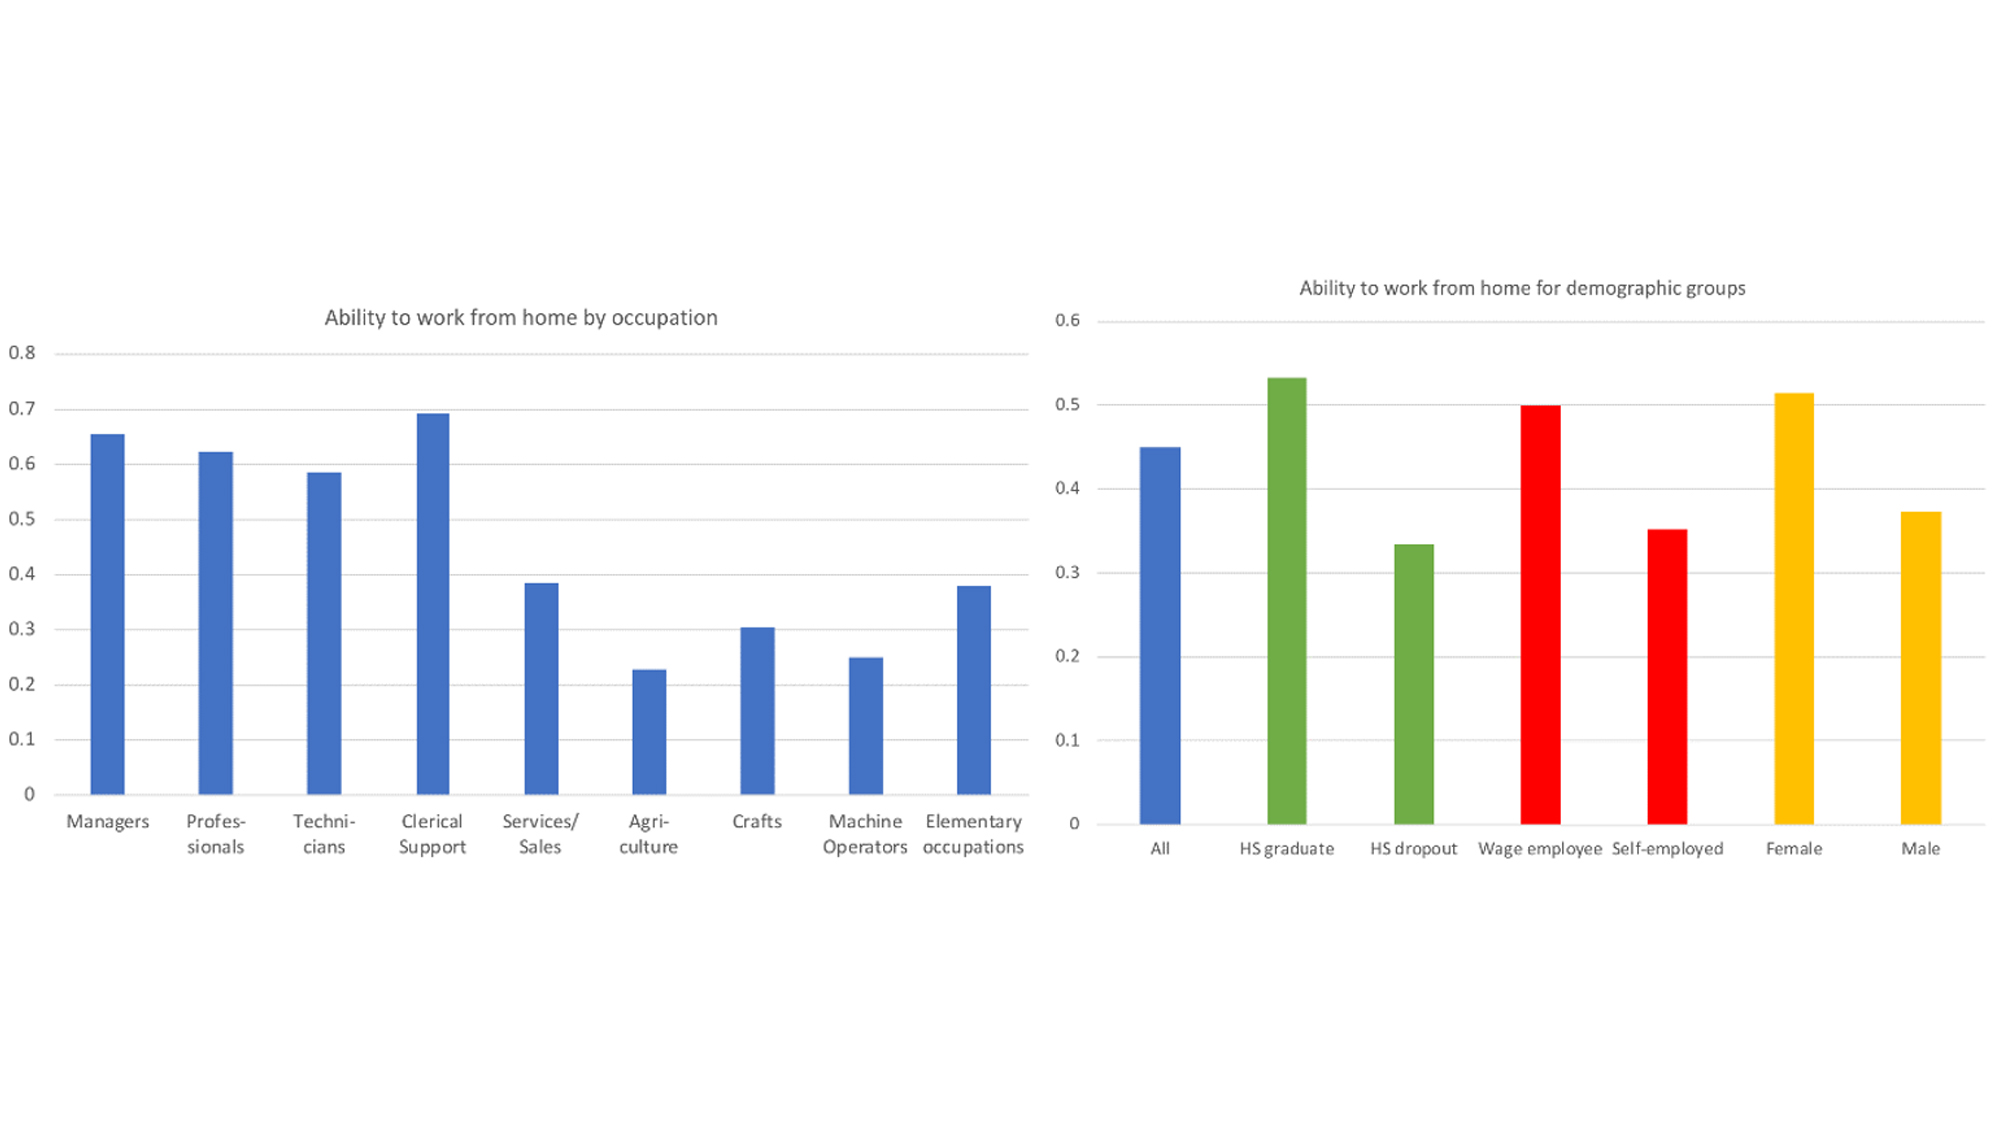 Work from home ability by occupation and demographic groups